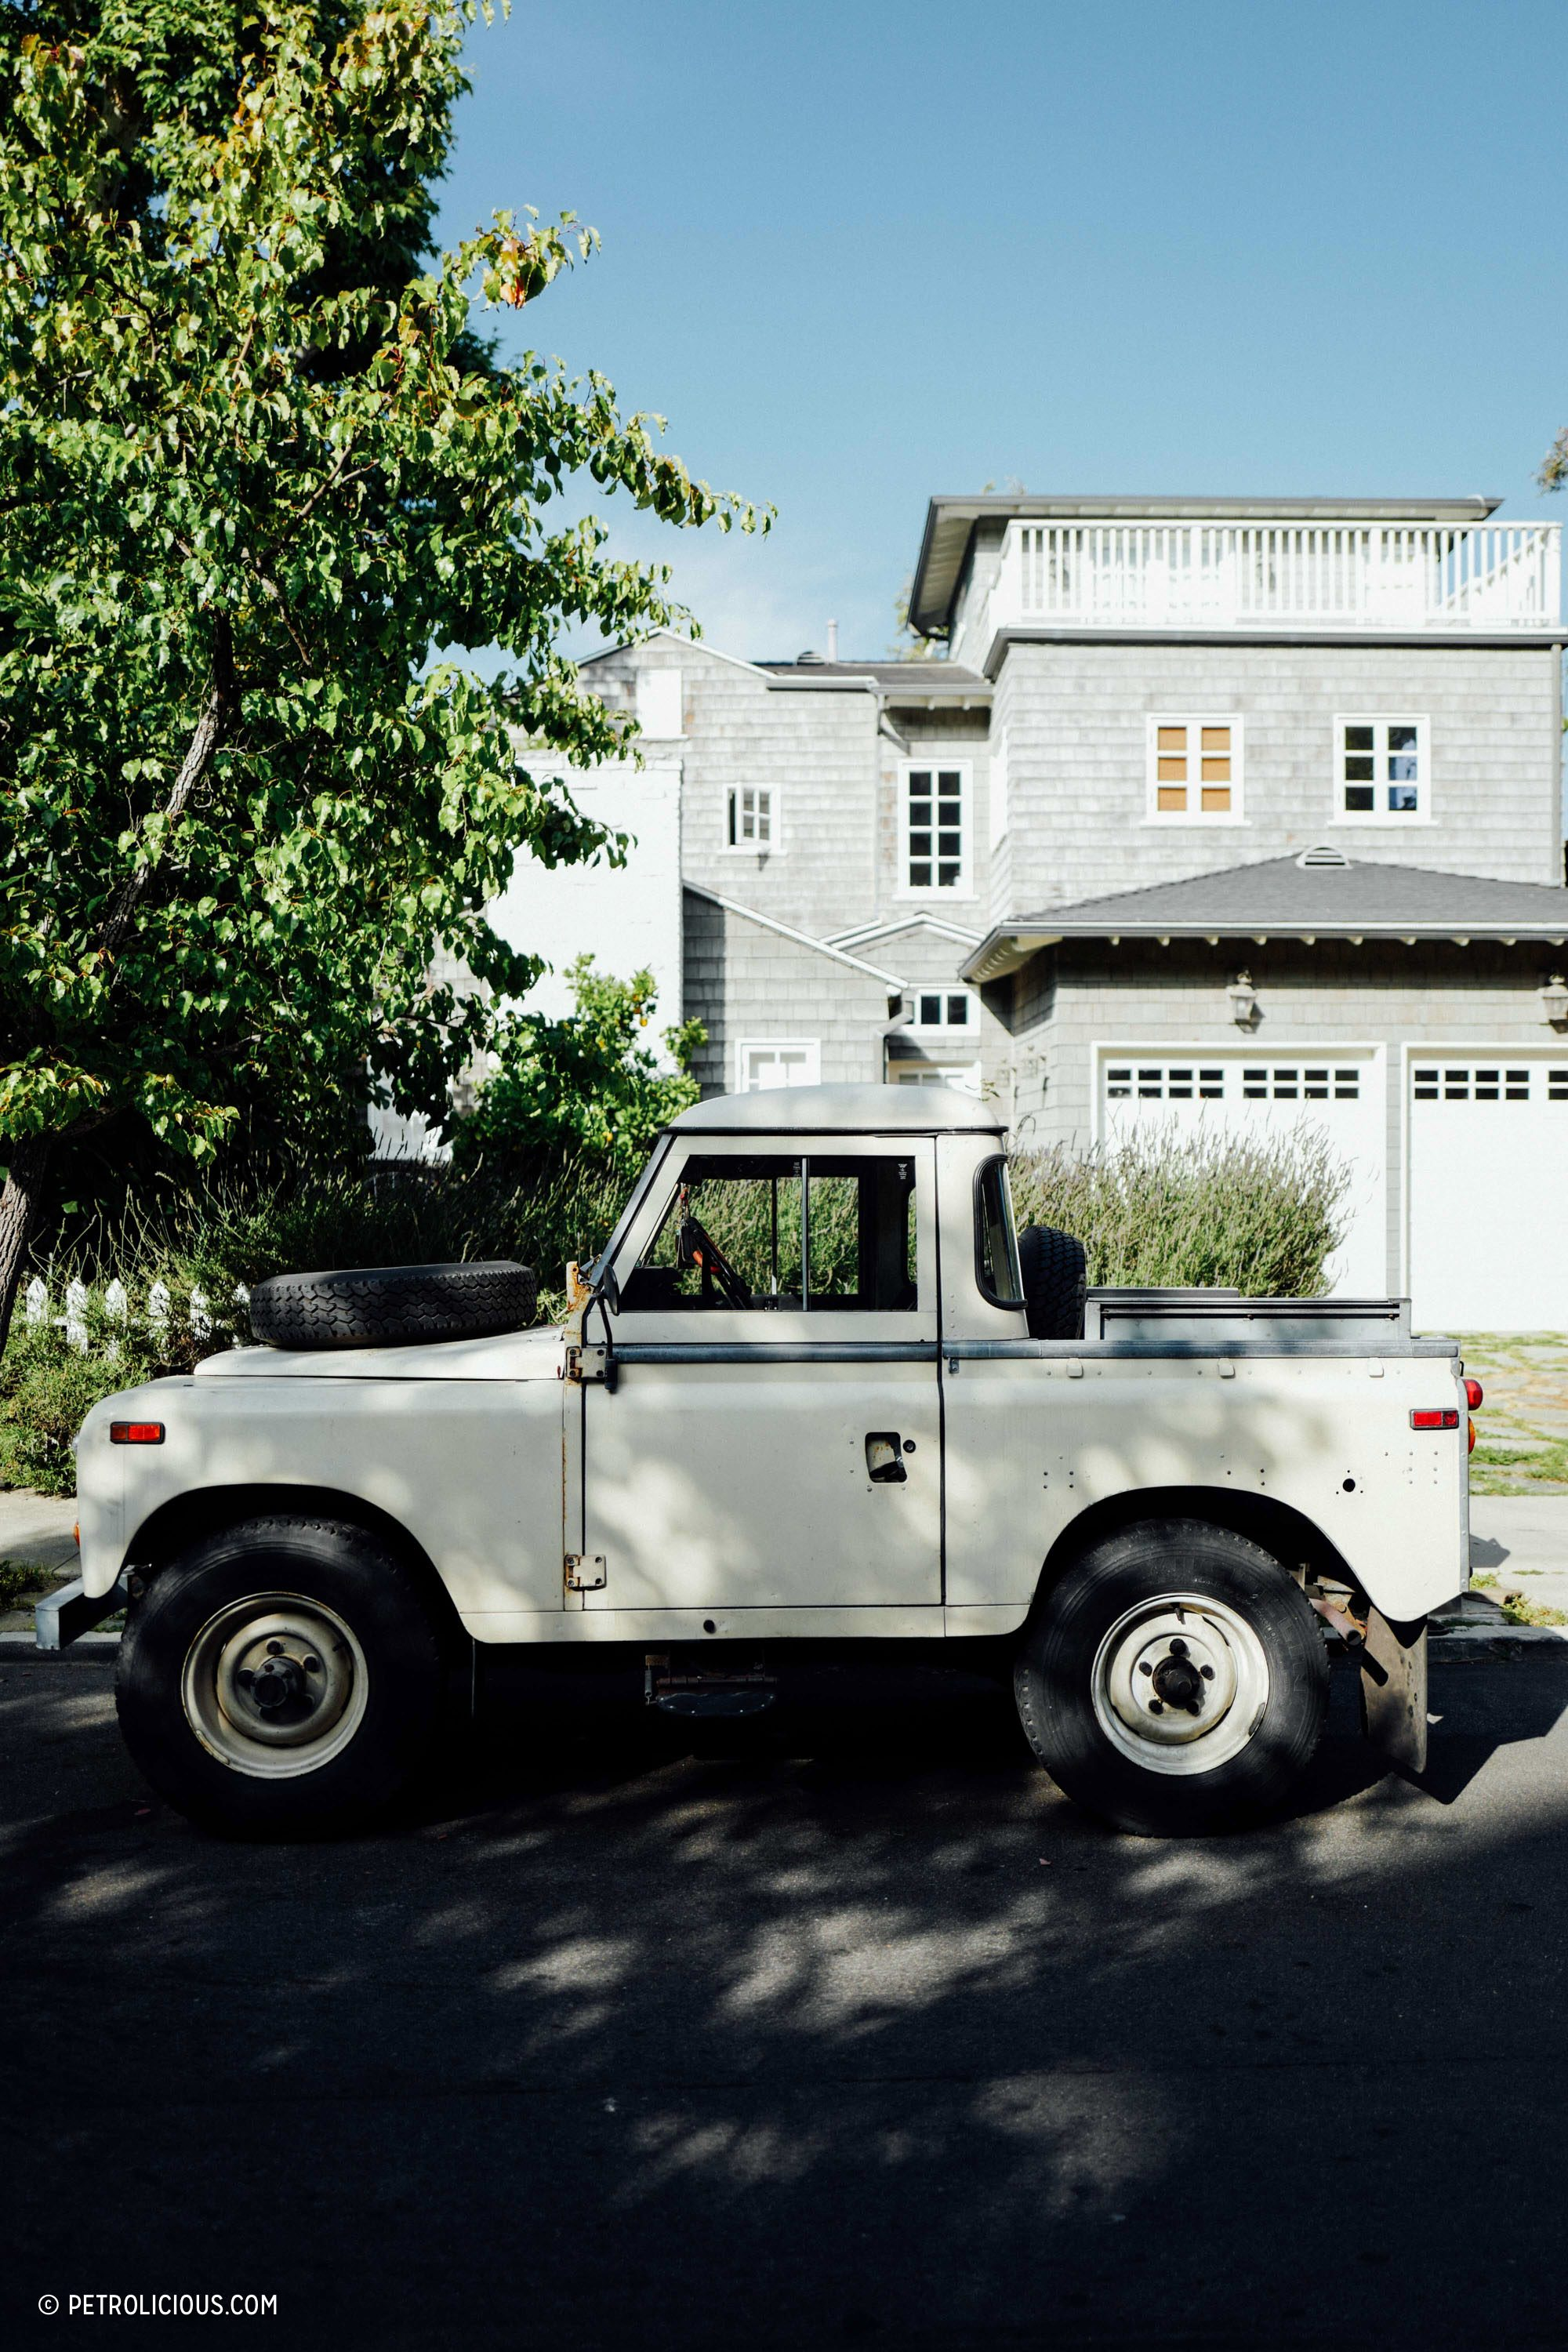 Land Rover Santa Monica >> Street Find: This Land Rover Pickup Is Aging Beautifully ...